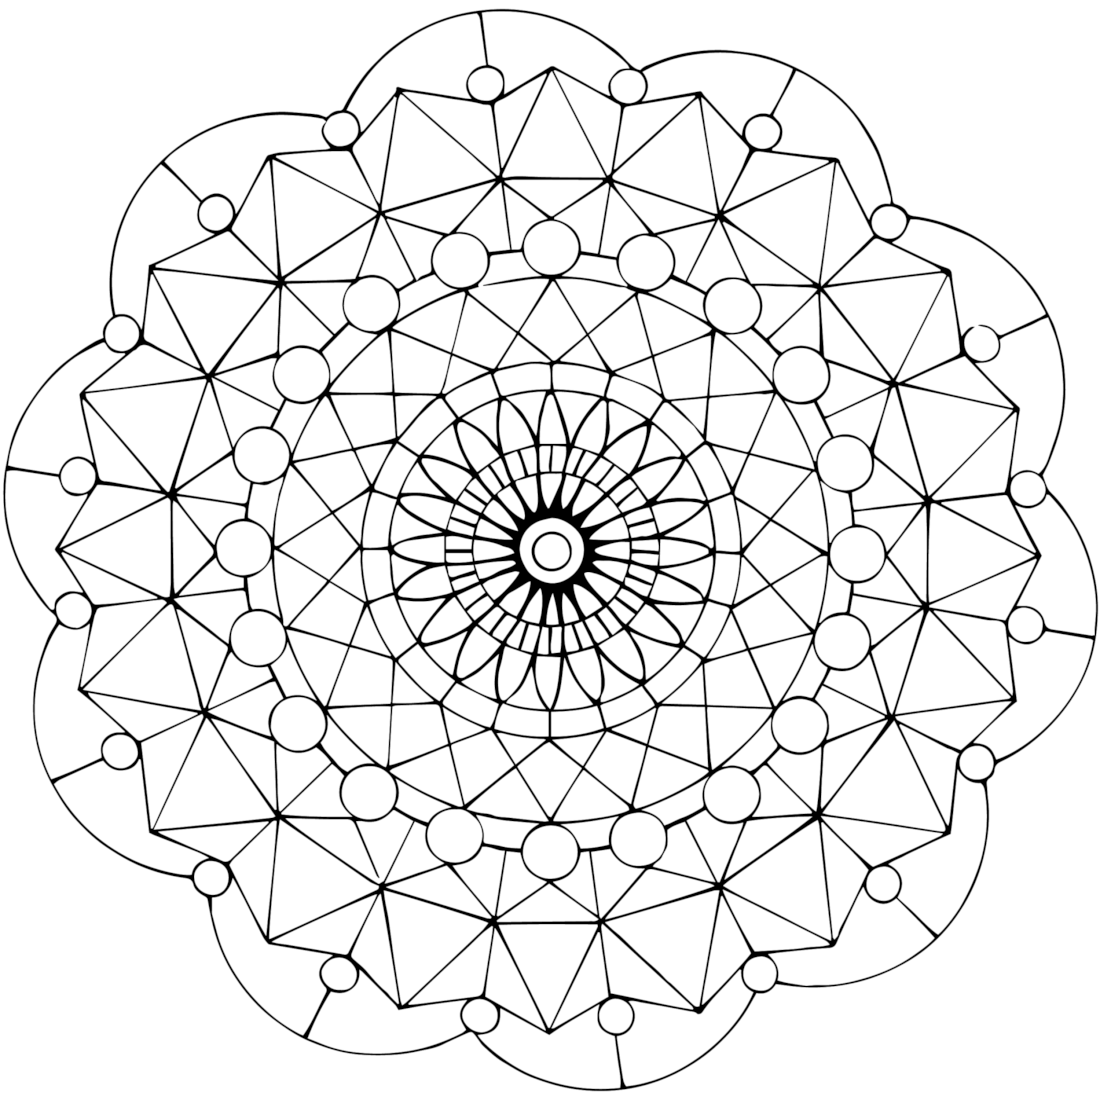 Doilies are a flat circular mat usually made of stringed fabric or